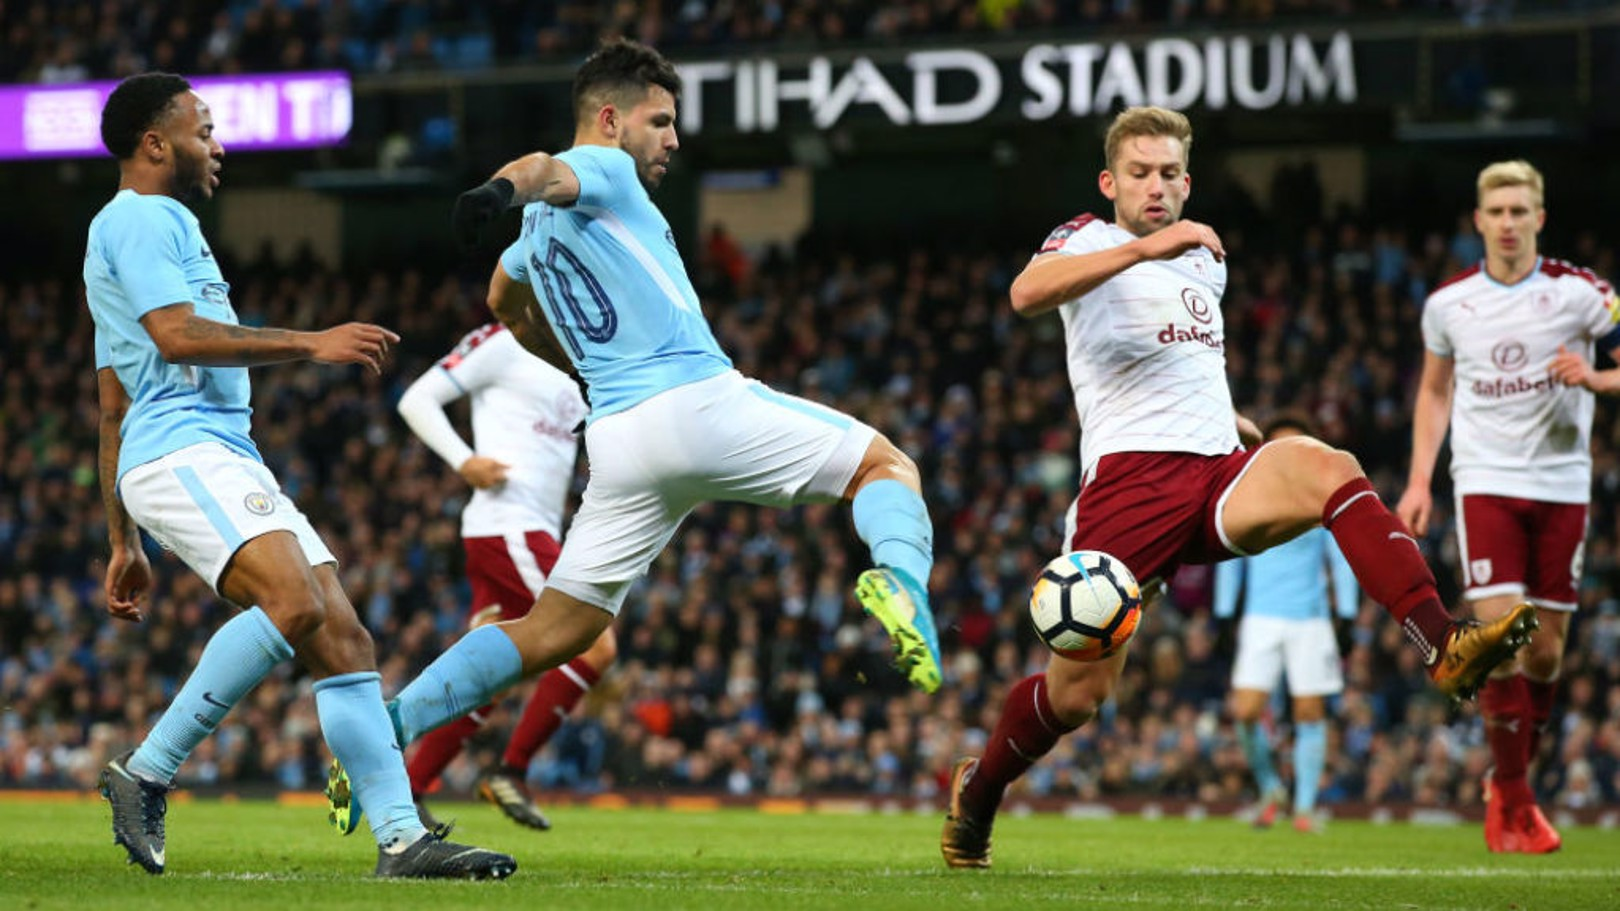 City vs Burnley : Les matches dans le match